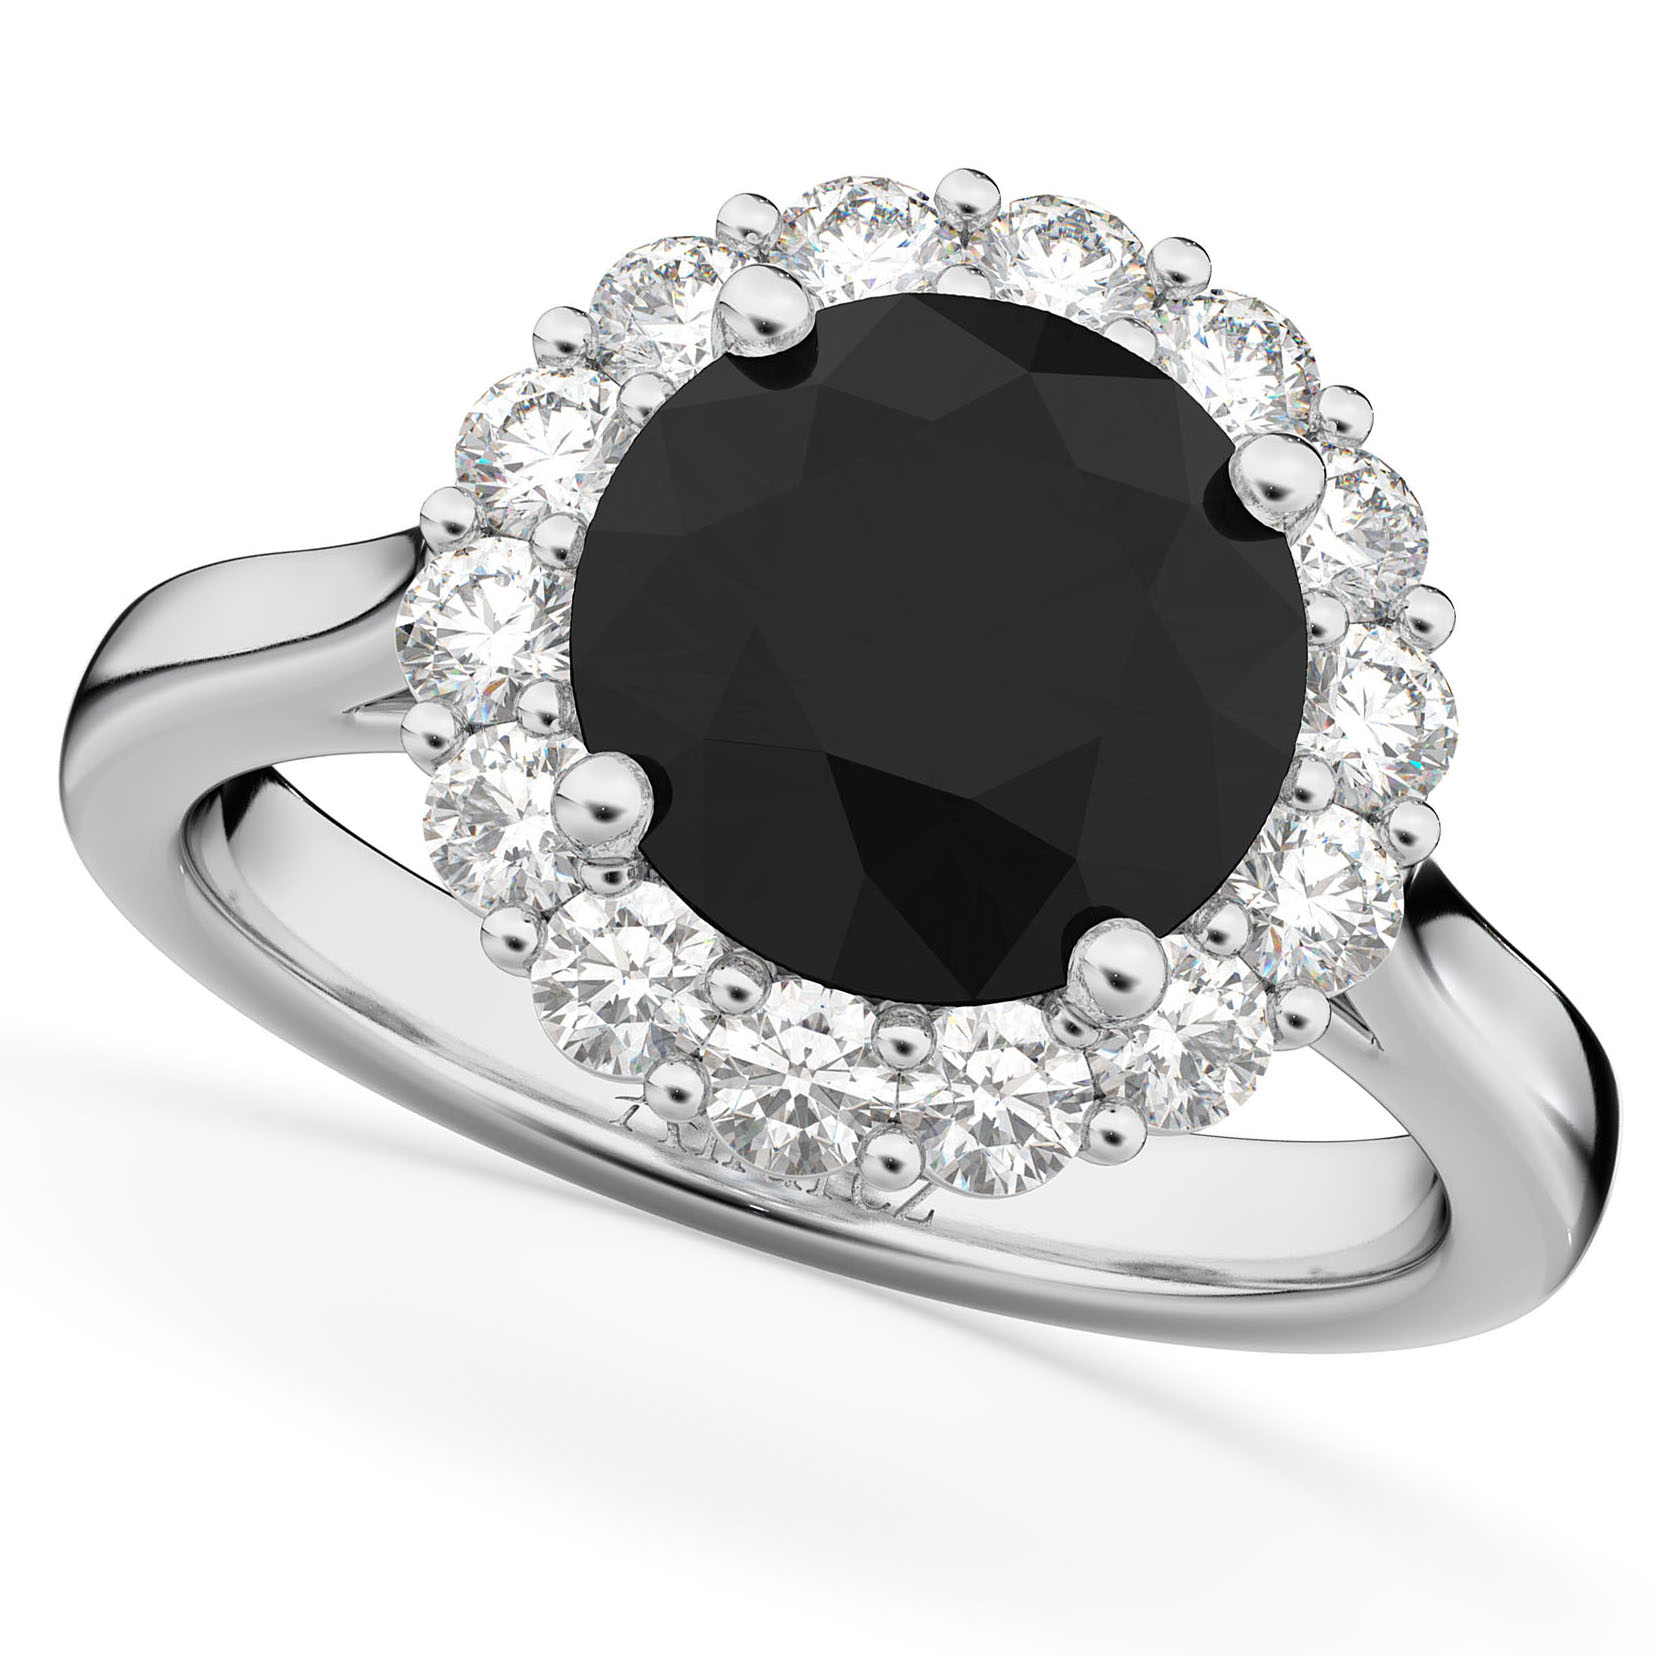 round black diamond diamond engagement ring 14k white gold - Black Diamond Wedding Rings For Him